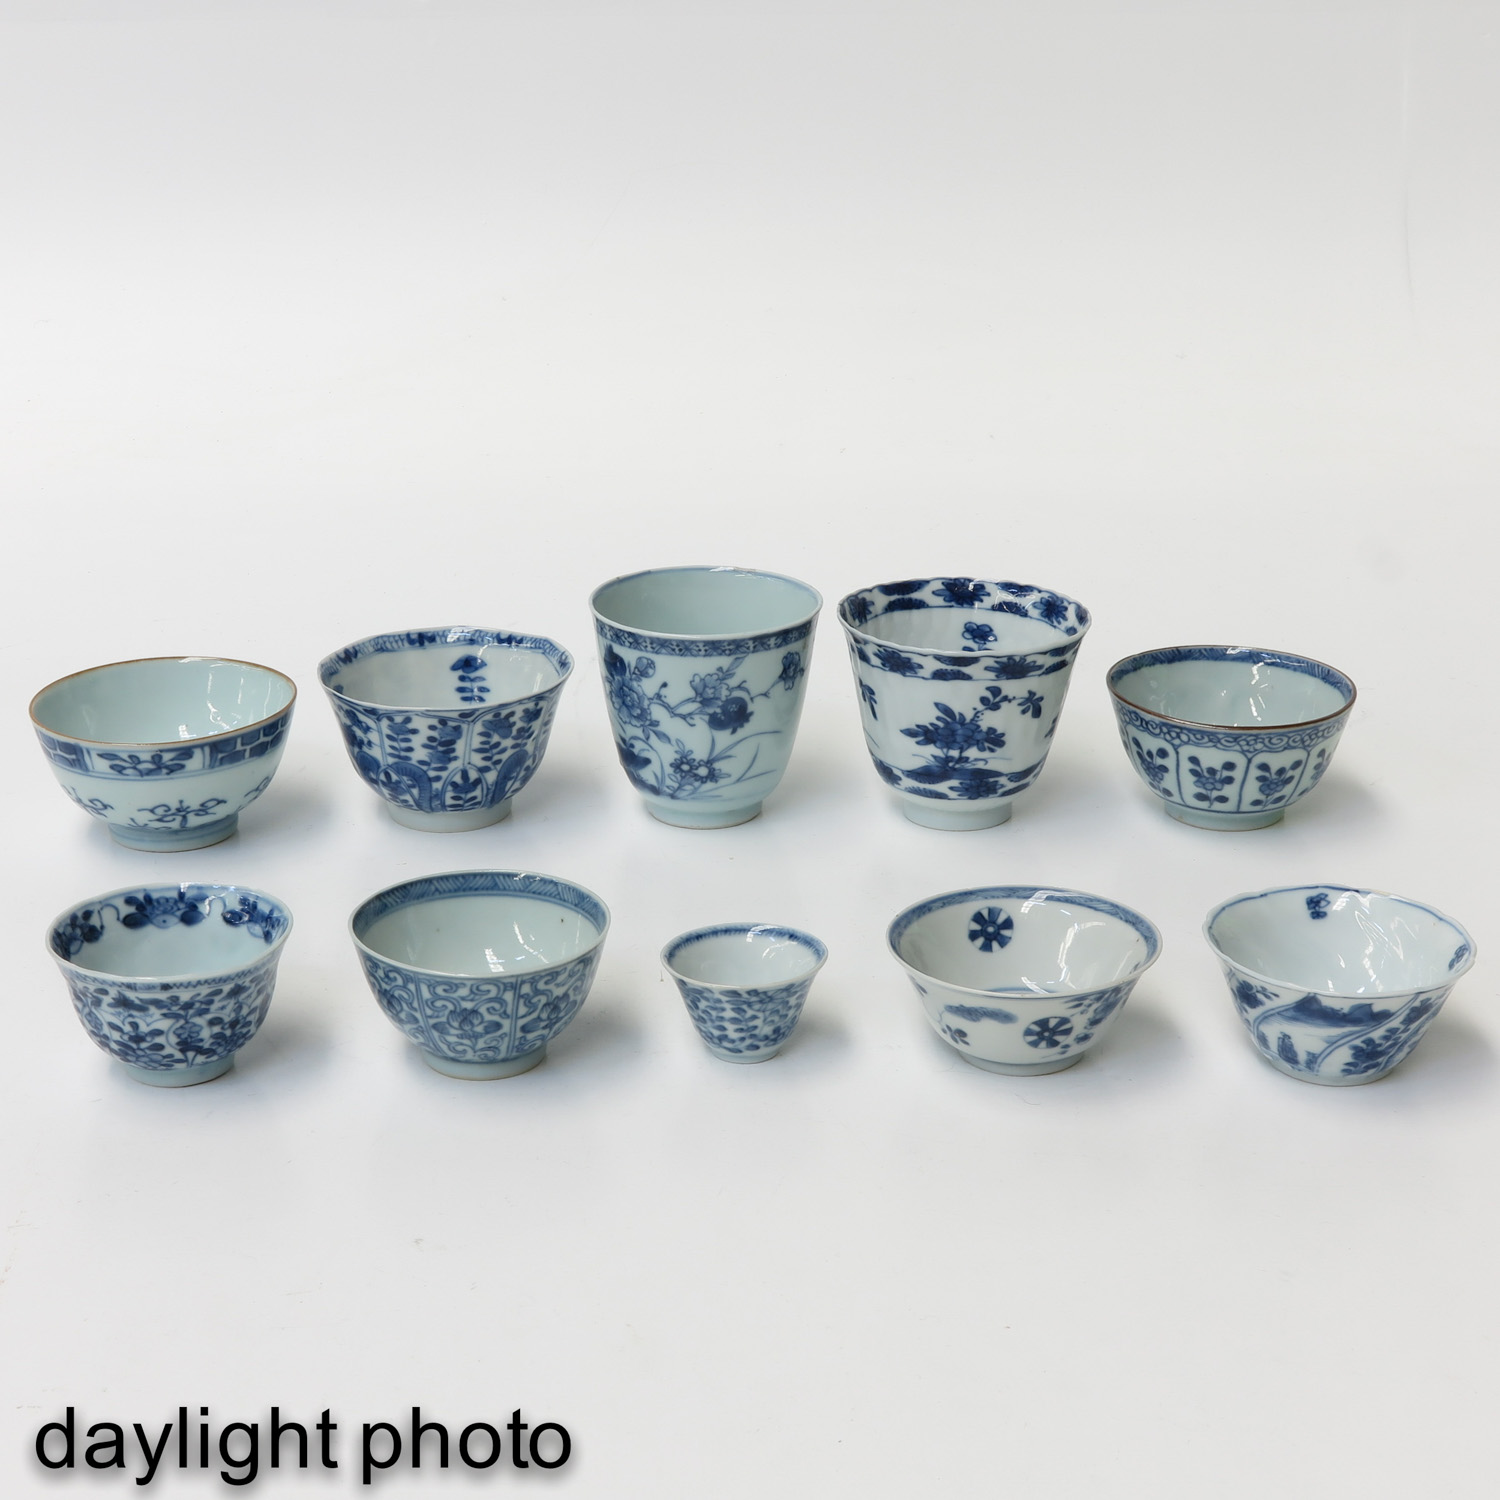 A Collection of 20 Cups - Image 7 of 10